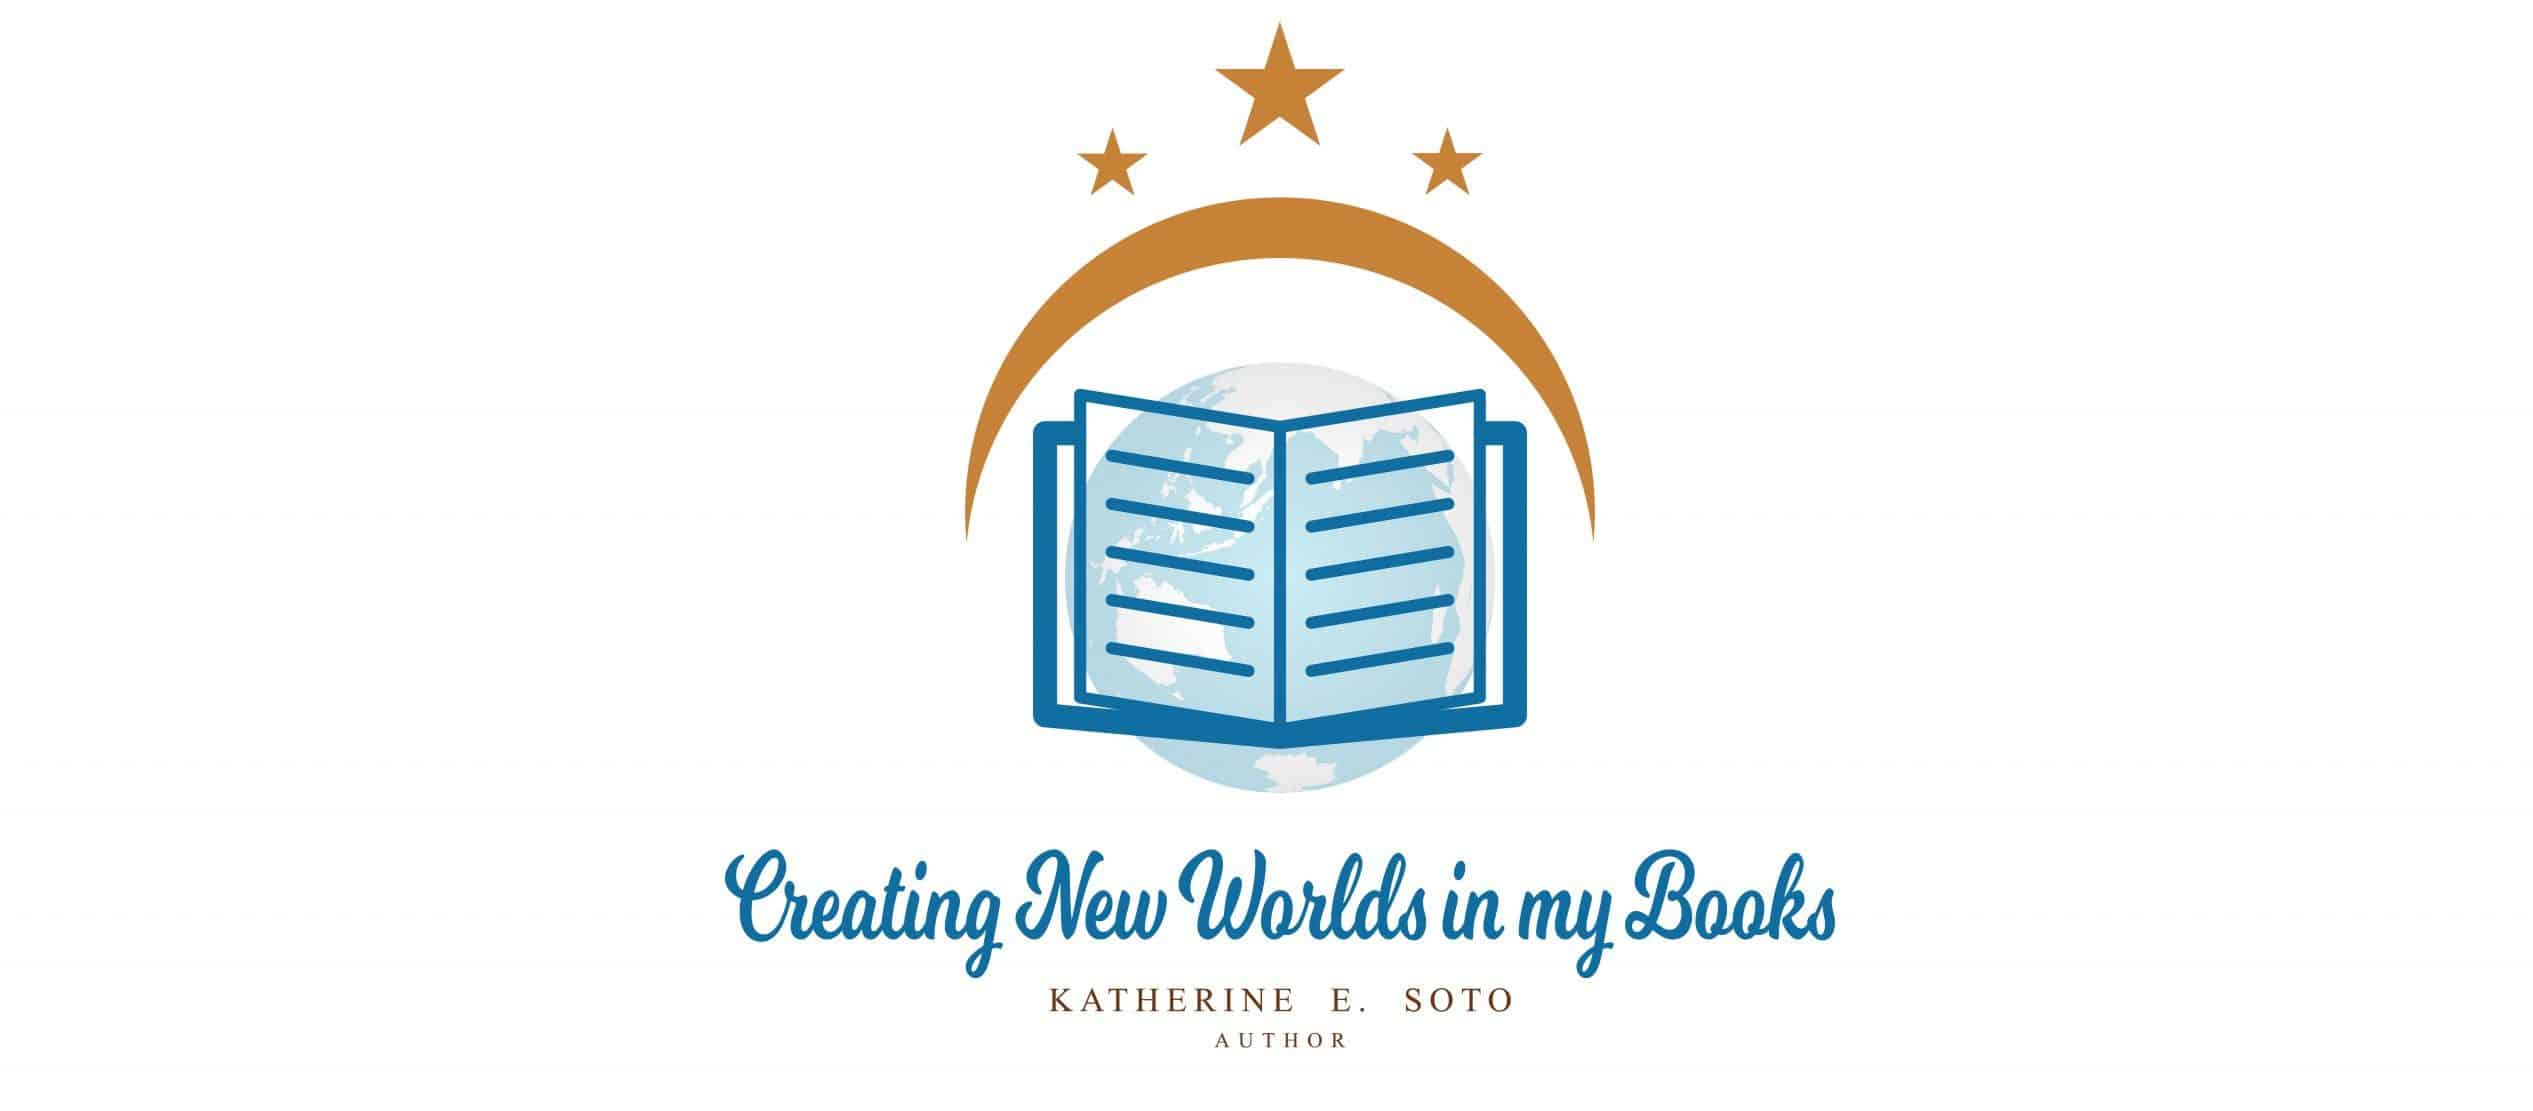 Katherineesoto-author.com